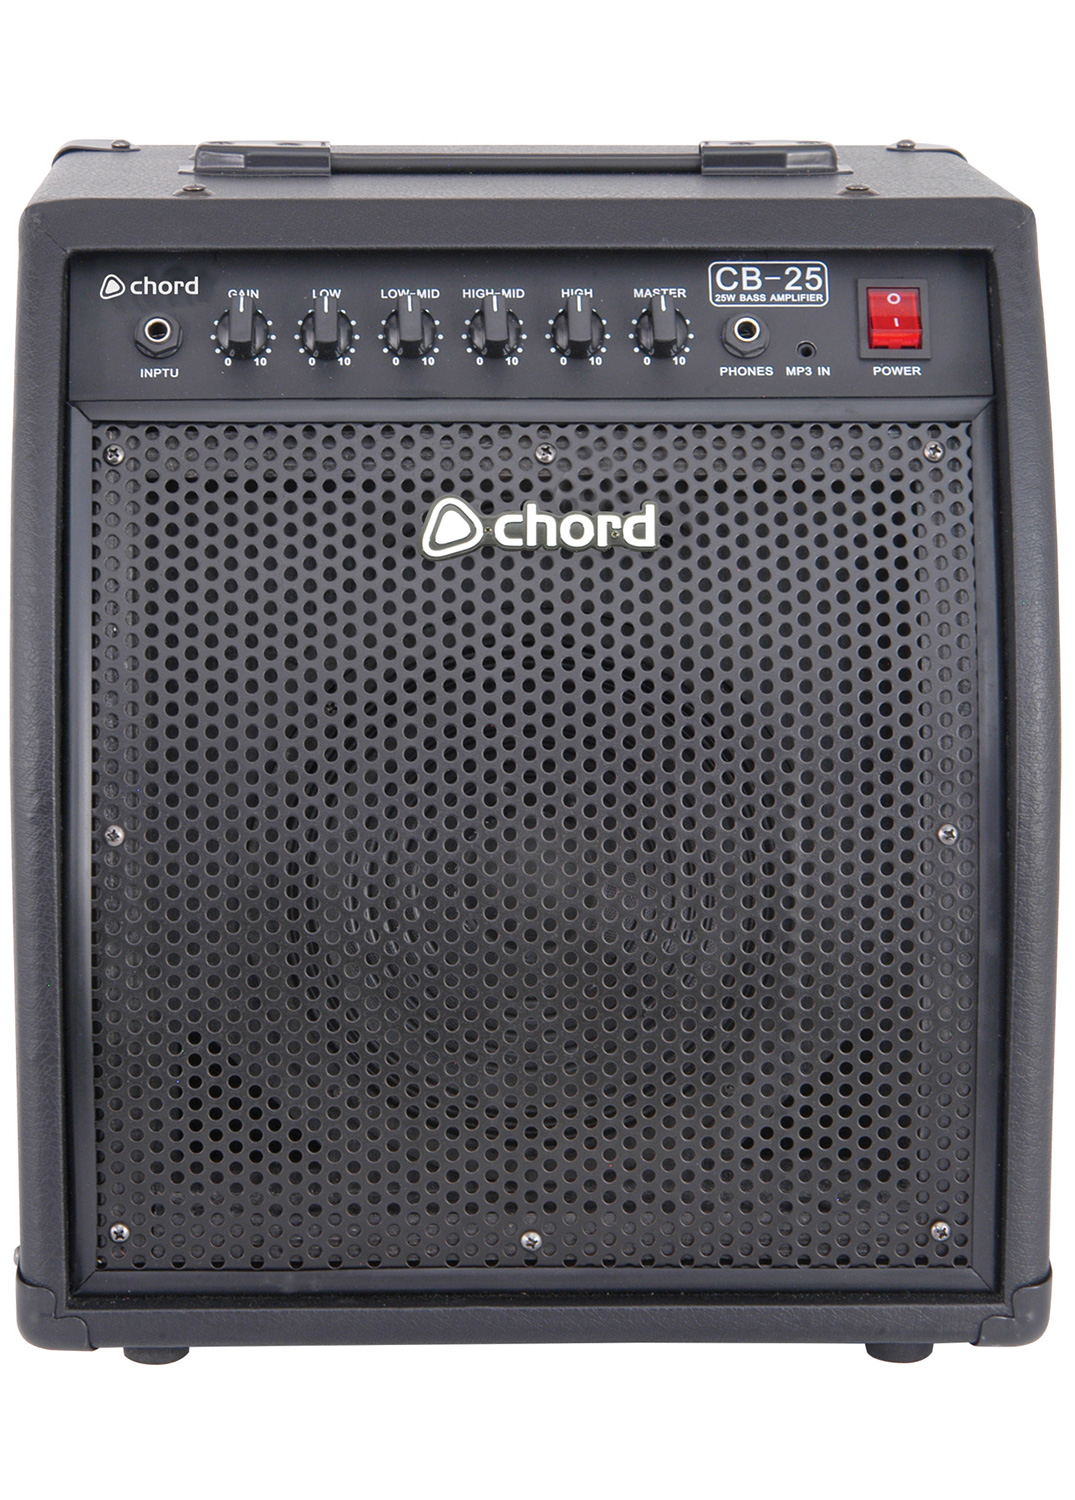 Bass Guitar Amp Frequency : chord cb25 cb series bass amplifier trax music store ~ Hamham.info Haus und Dekorationen